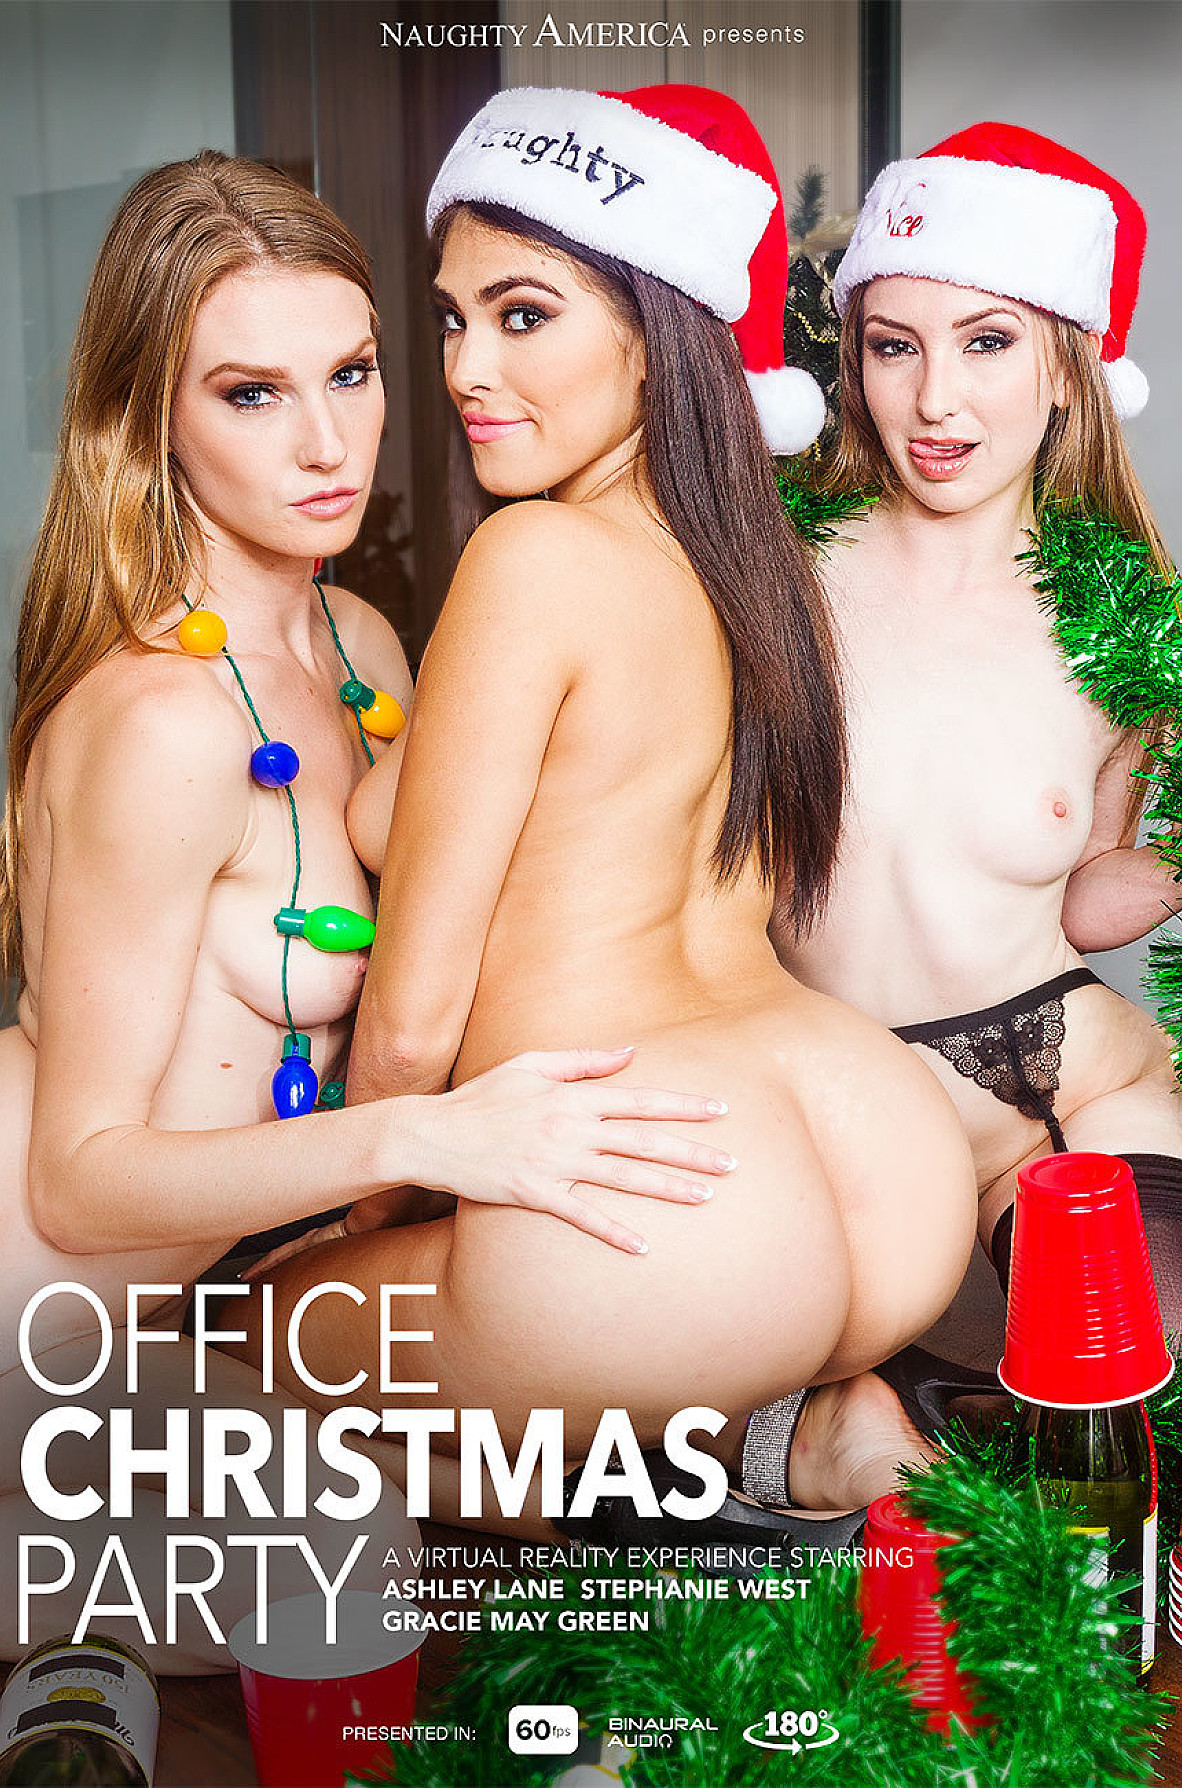 Watch Ashley Lane, Gracie Green, Stephanie West and Ryan Driller VR video in Naughty America